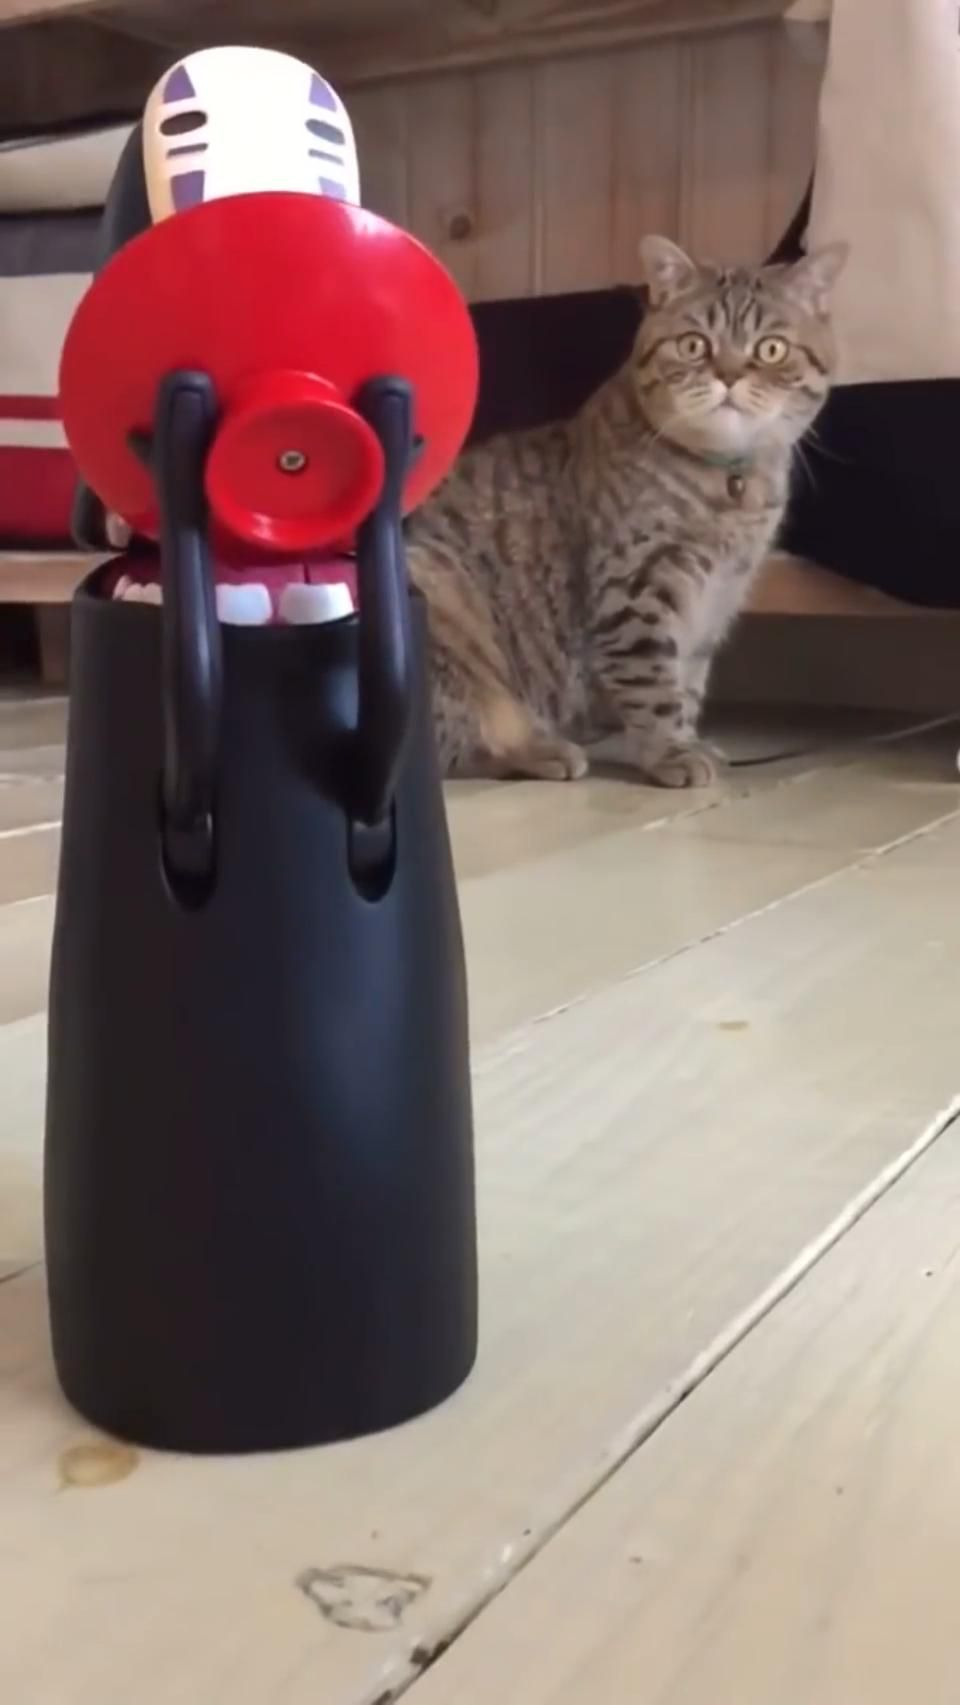 Cat stunned by No-Face toy 😅😂🤣 thumbnail